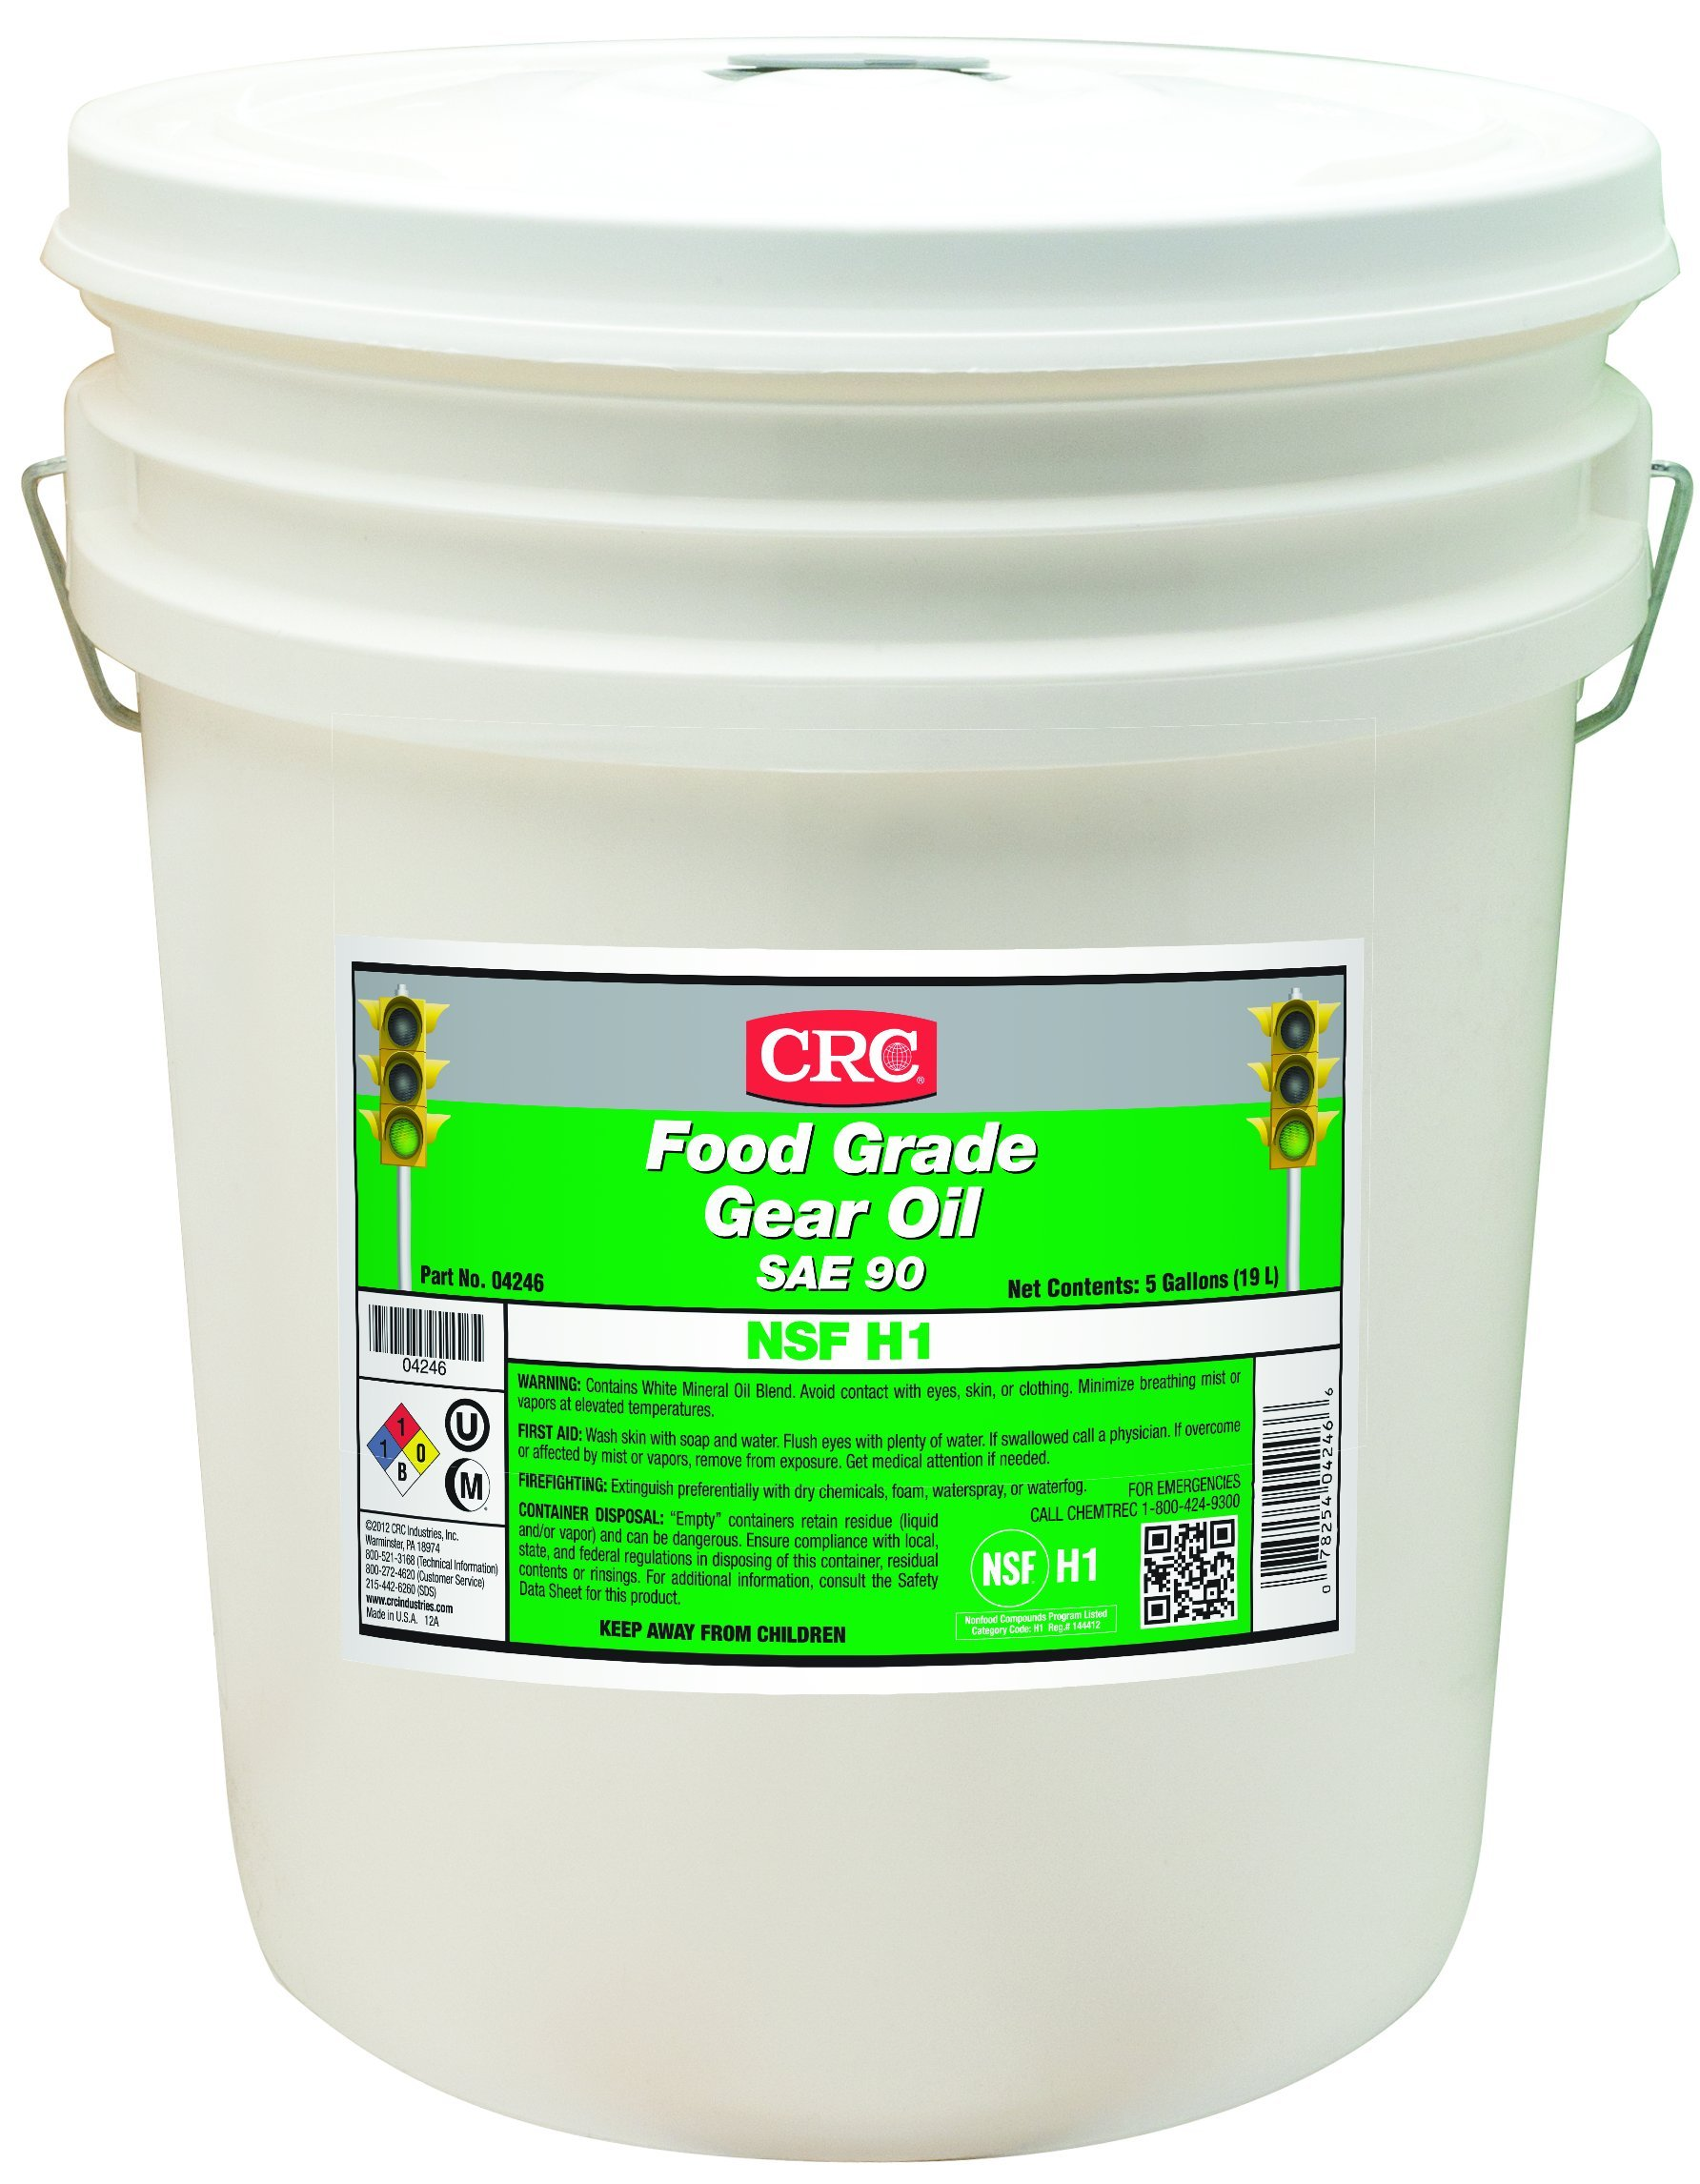 CRC Food Grade Gear Oil, 15 to 375 Degrees Temperature, 5 Gallon Pail, Clear, SAE 90 by CRC